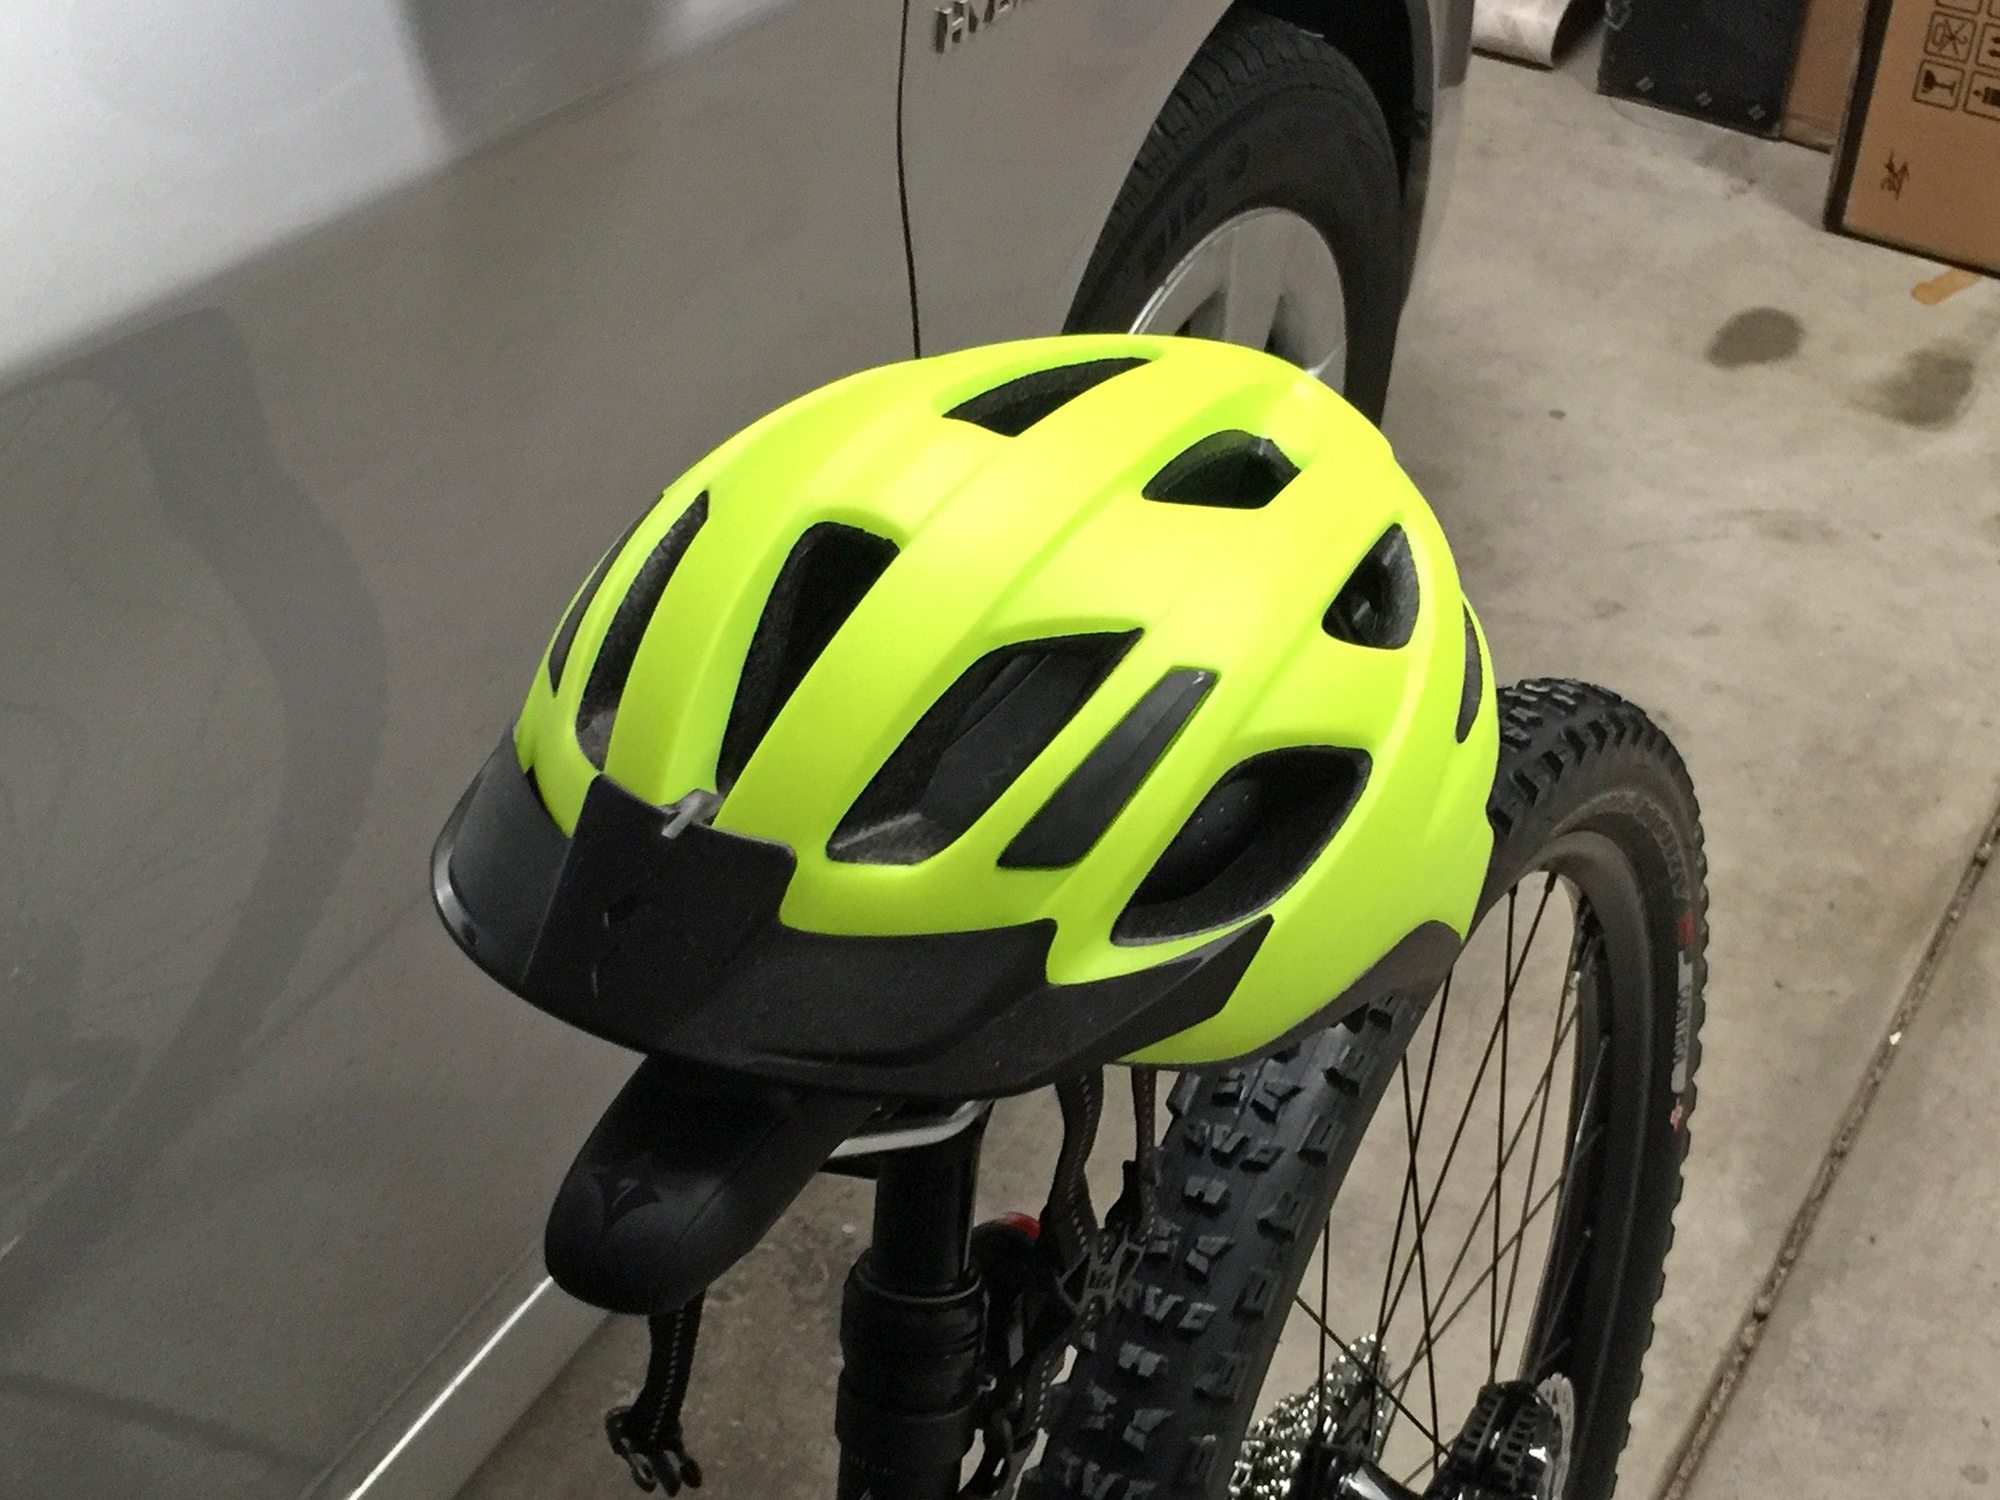 Specialized Centro Led Helmet Review Prices Specs Videos Photos